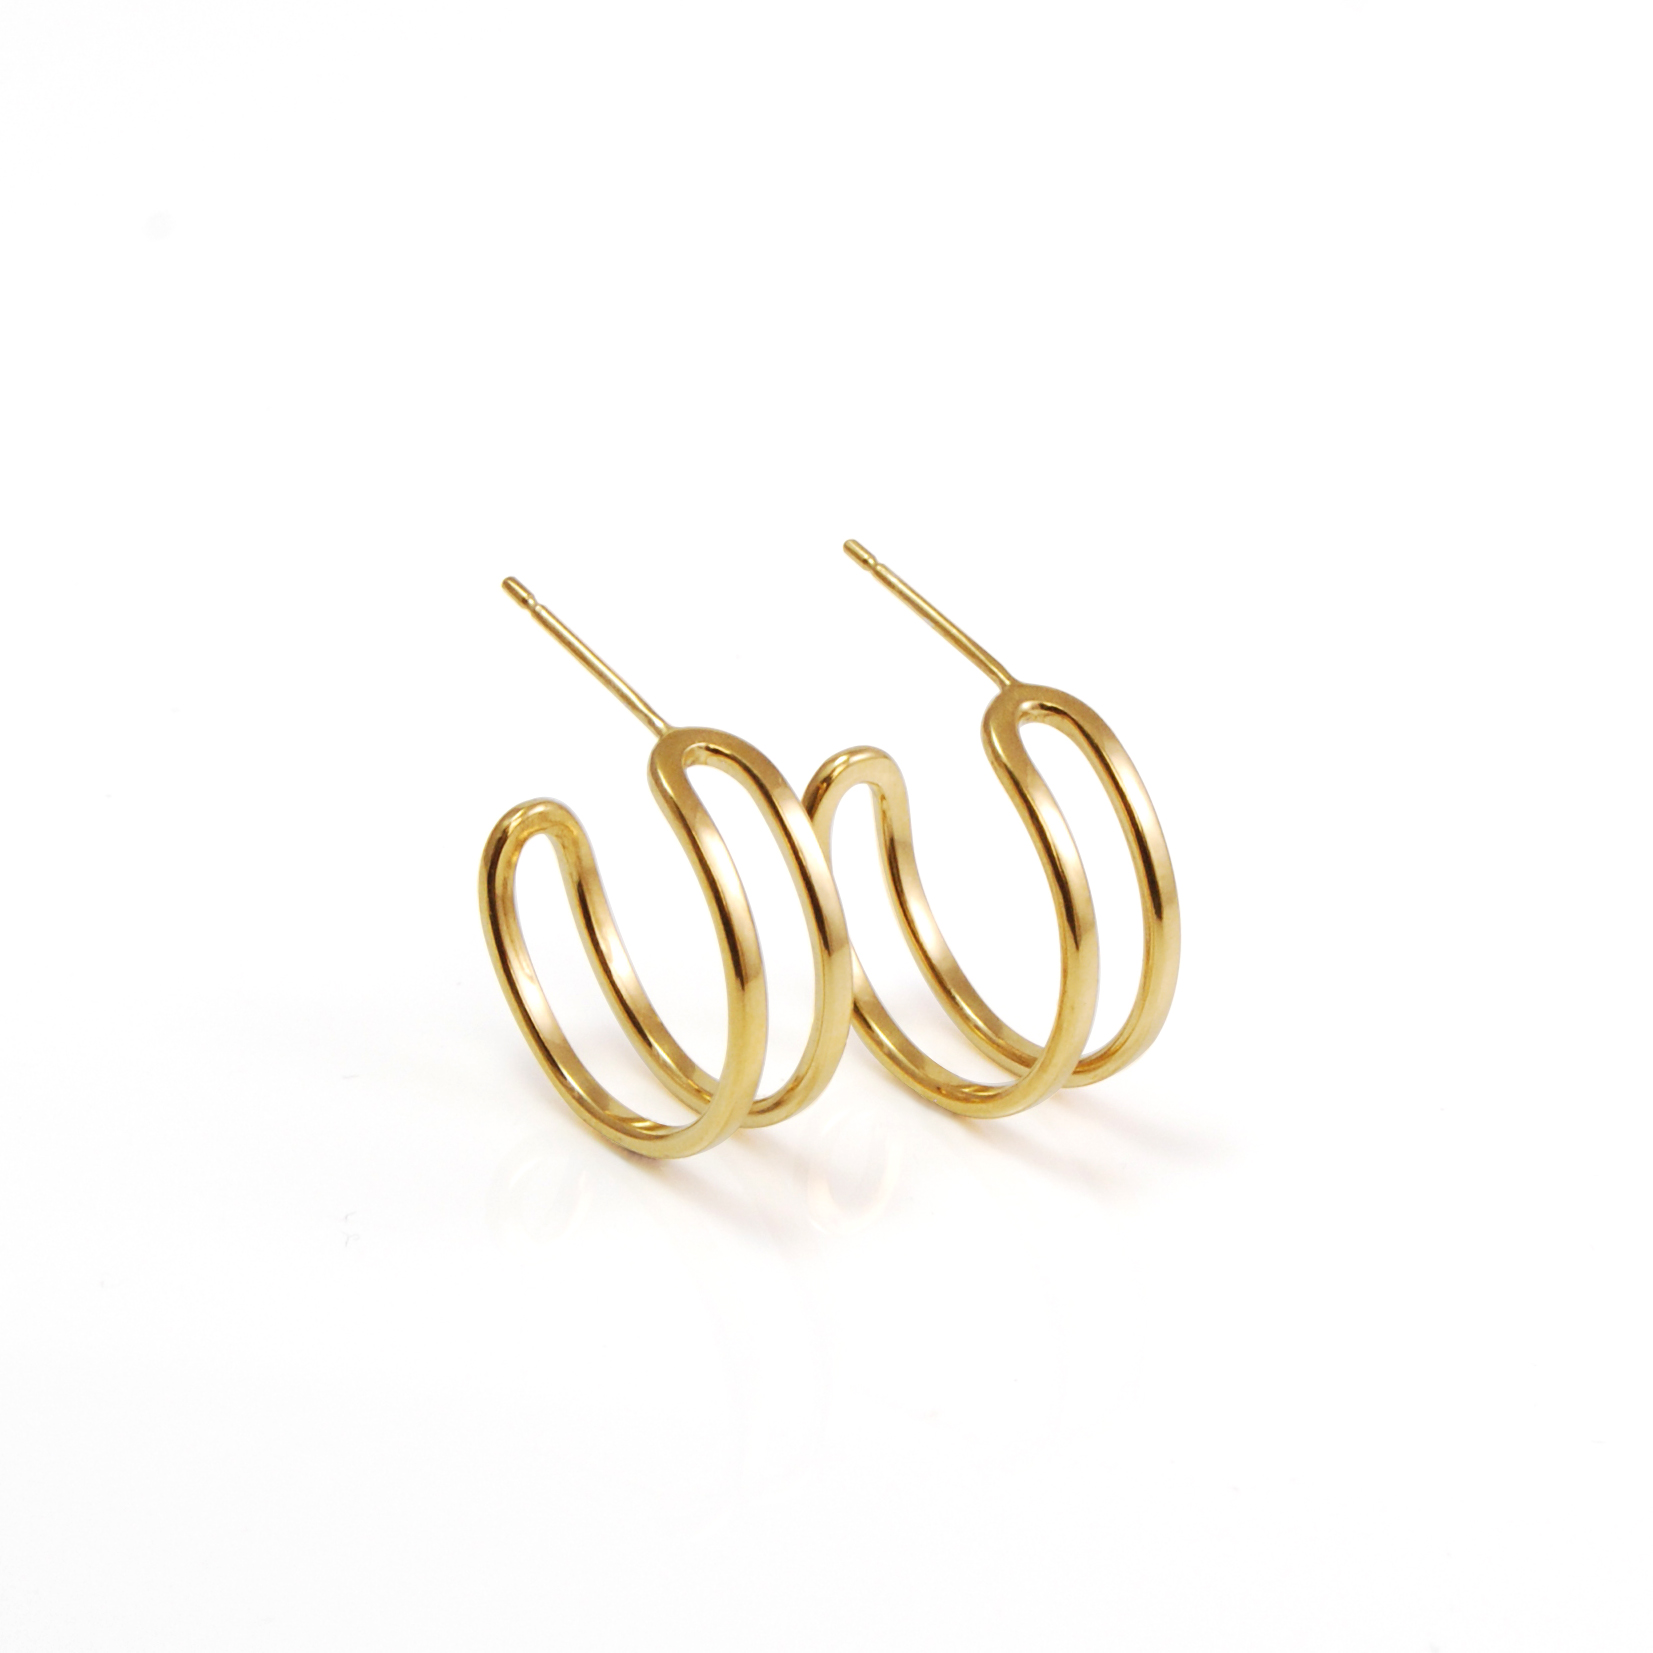 Gold plated parallel hoops